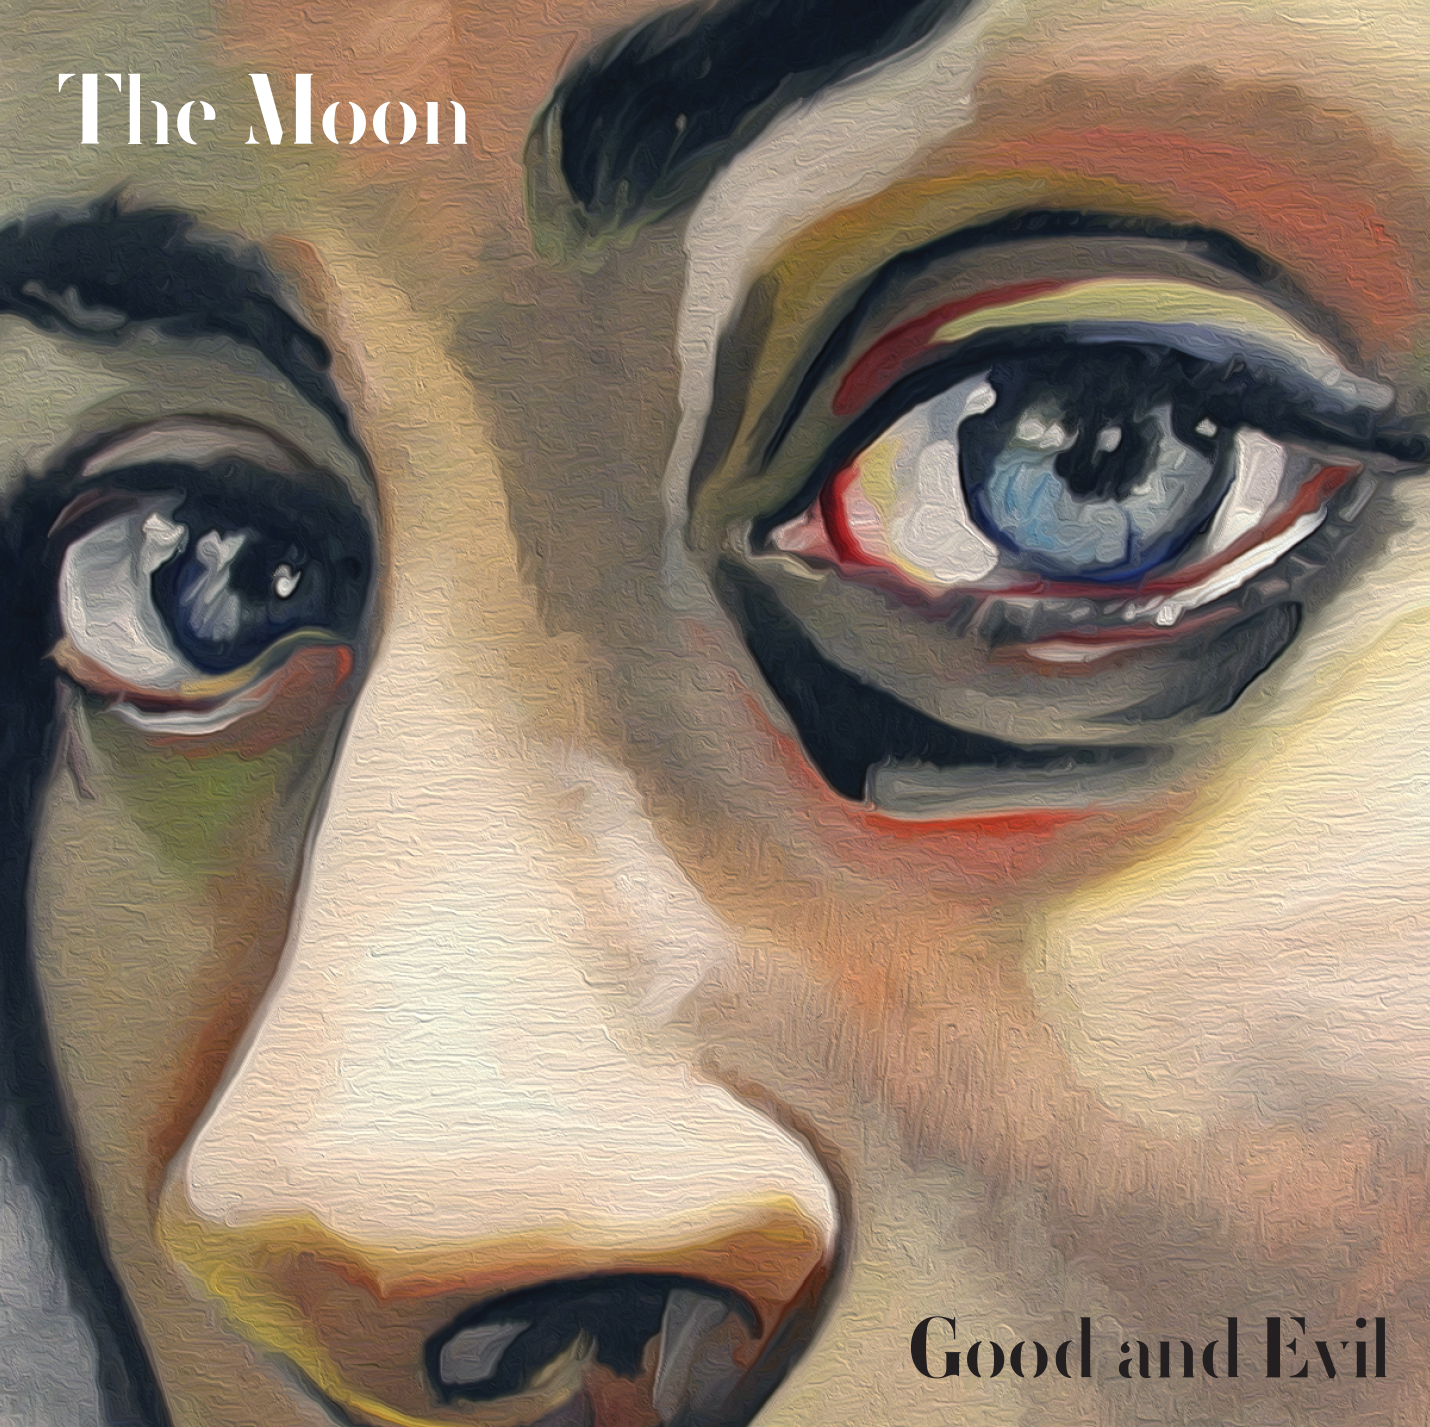 THE MOON :: GOOD AND EVIL